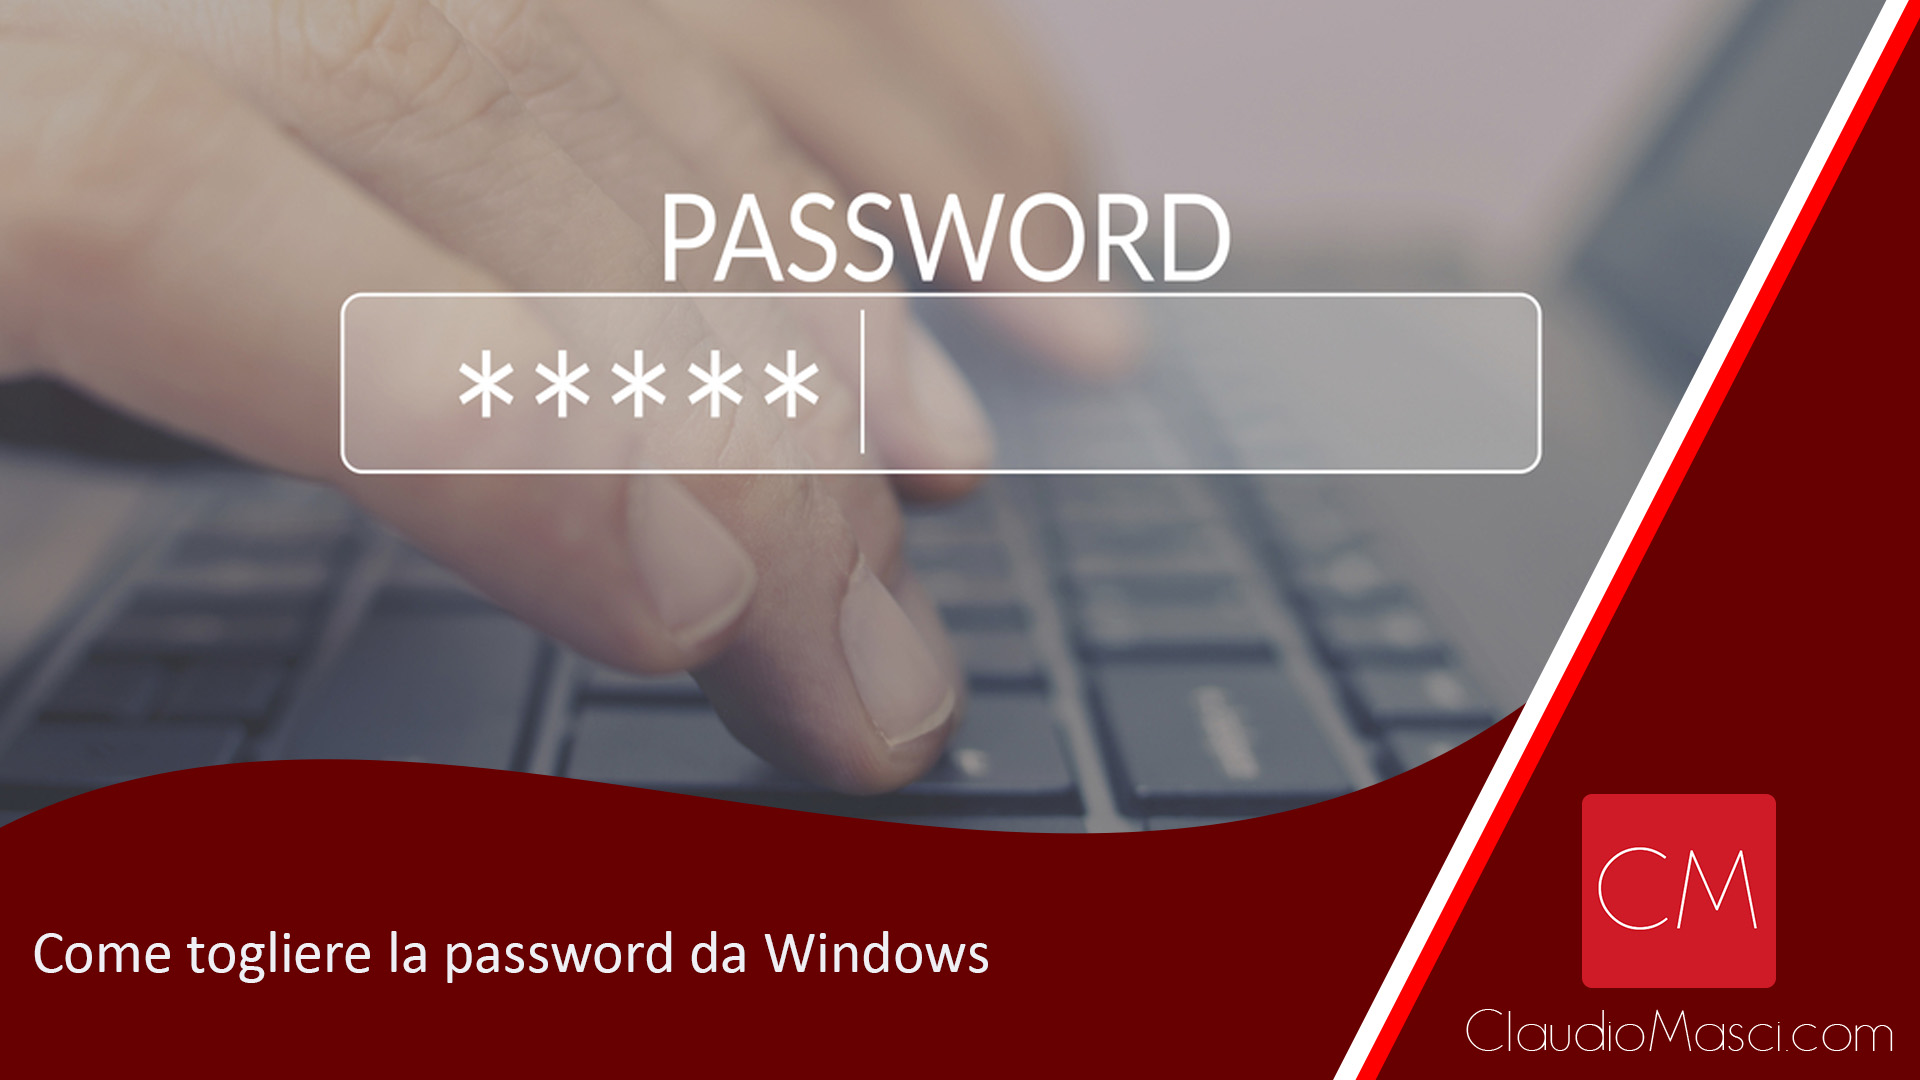 Come togliere la password da Windows